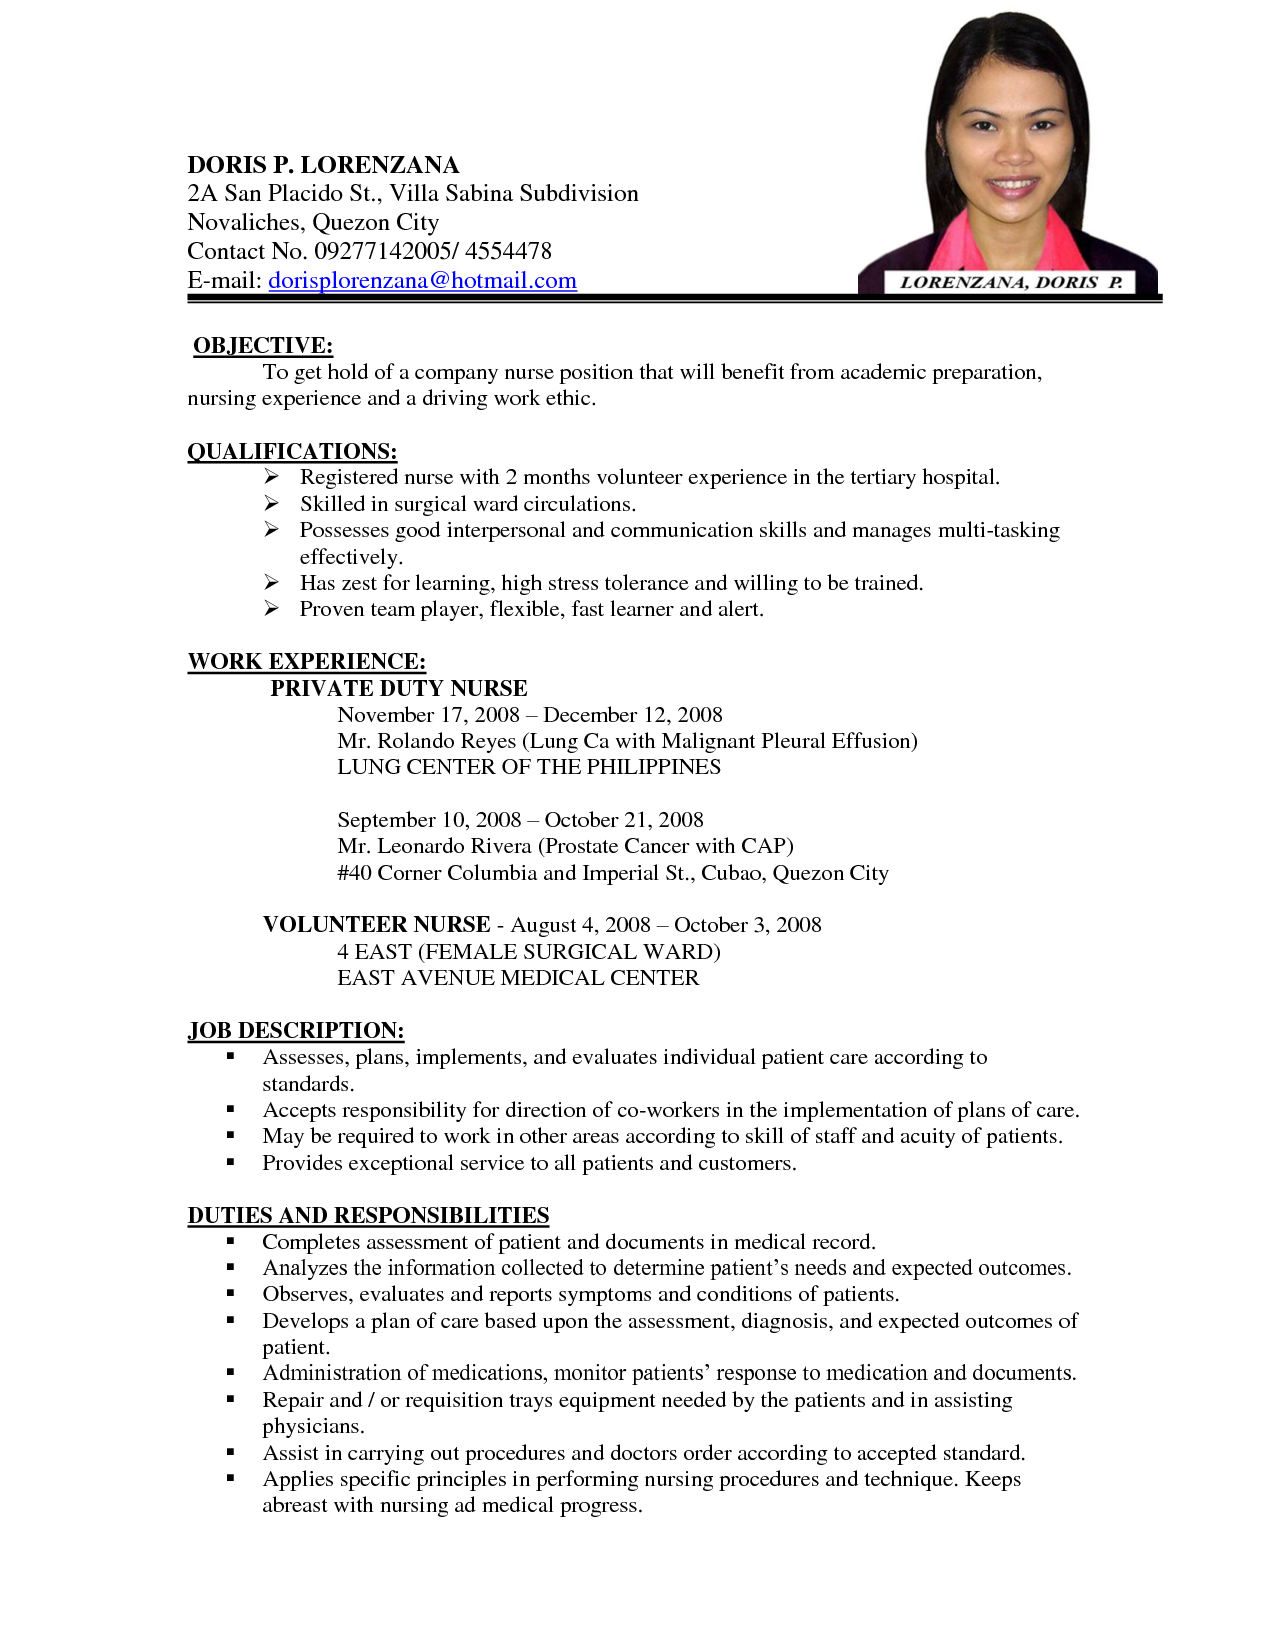 nursing curriculum vitae examples - Google Search Nursing Resume Template,  Resume Template Free, Sample